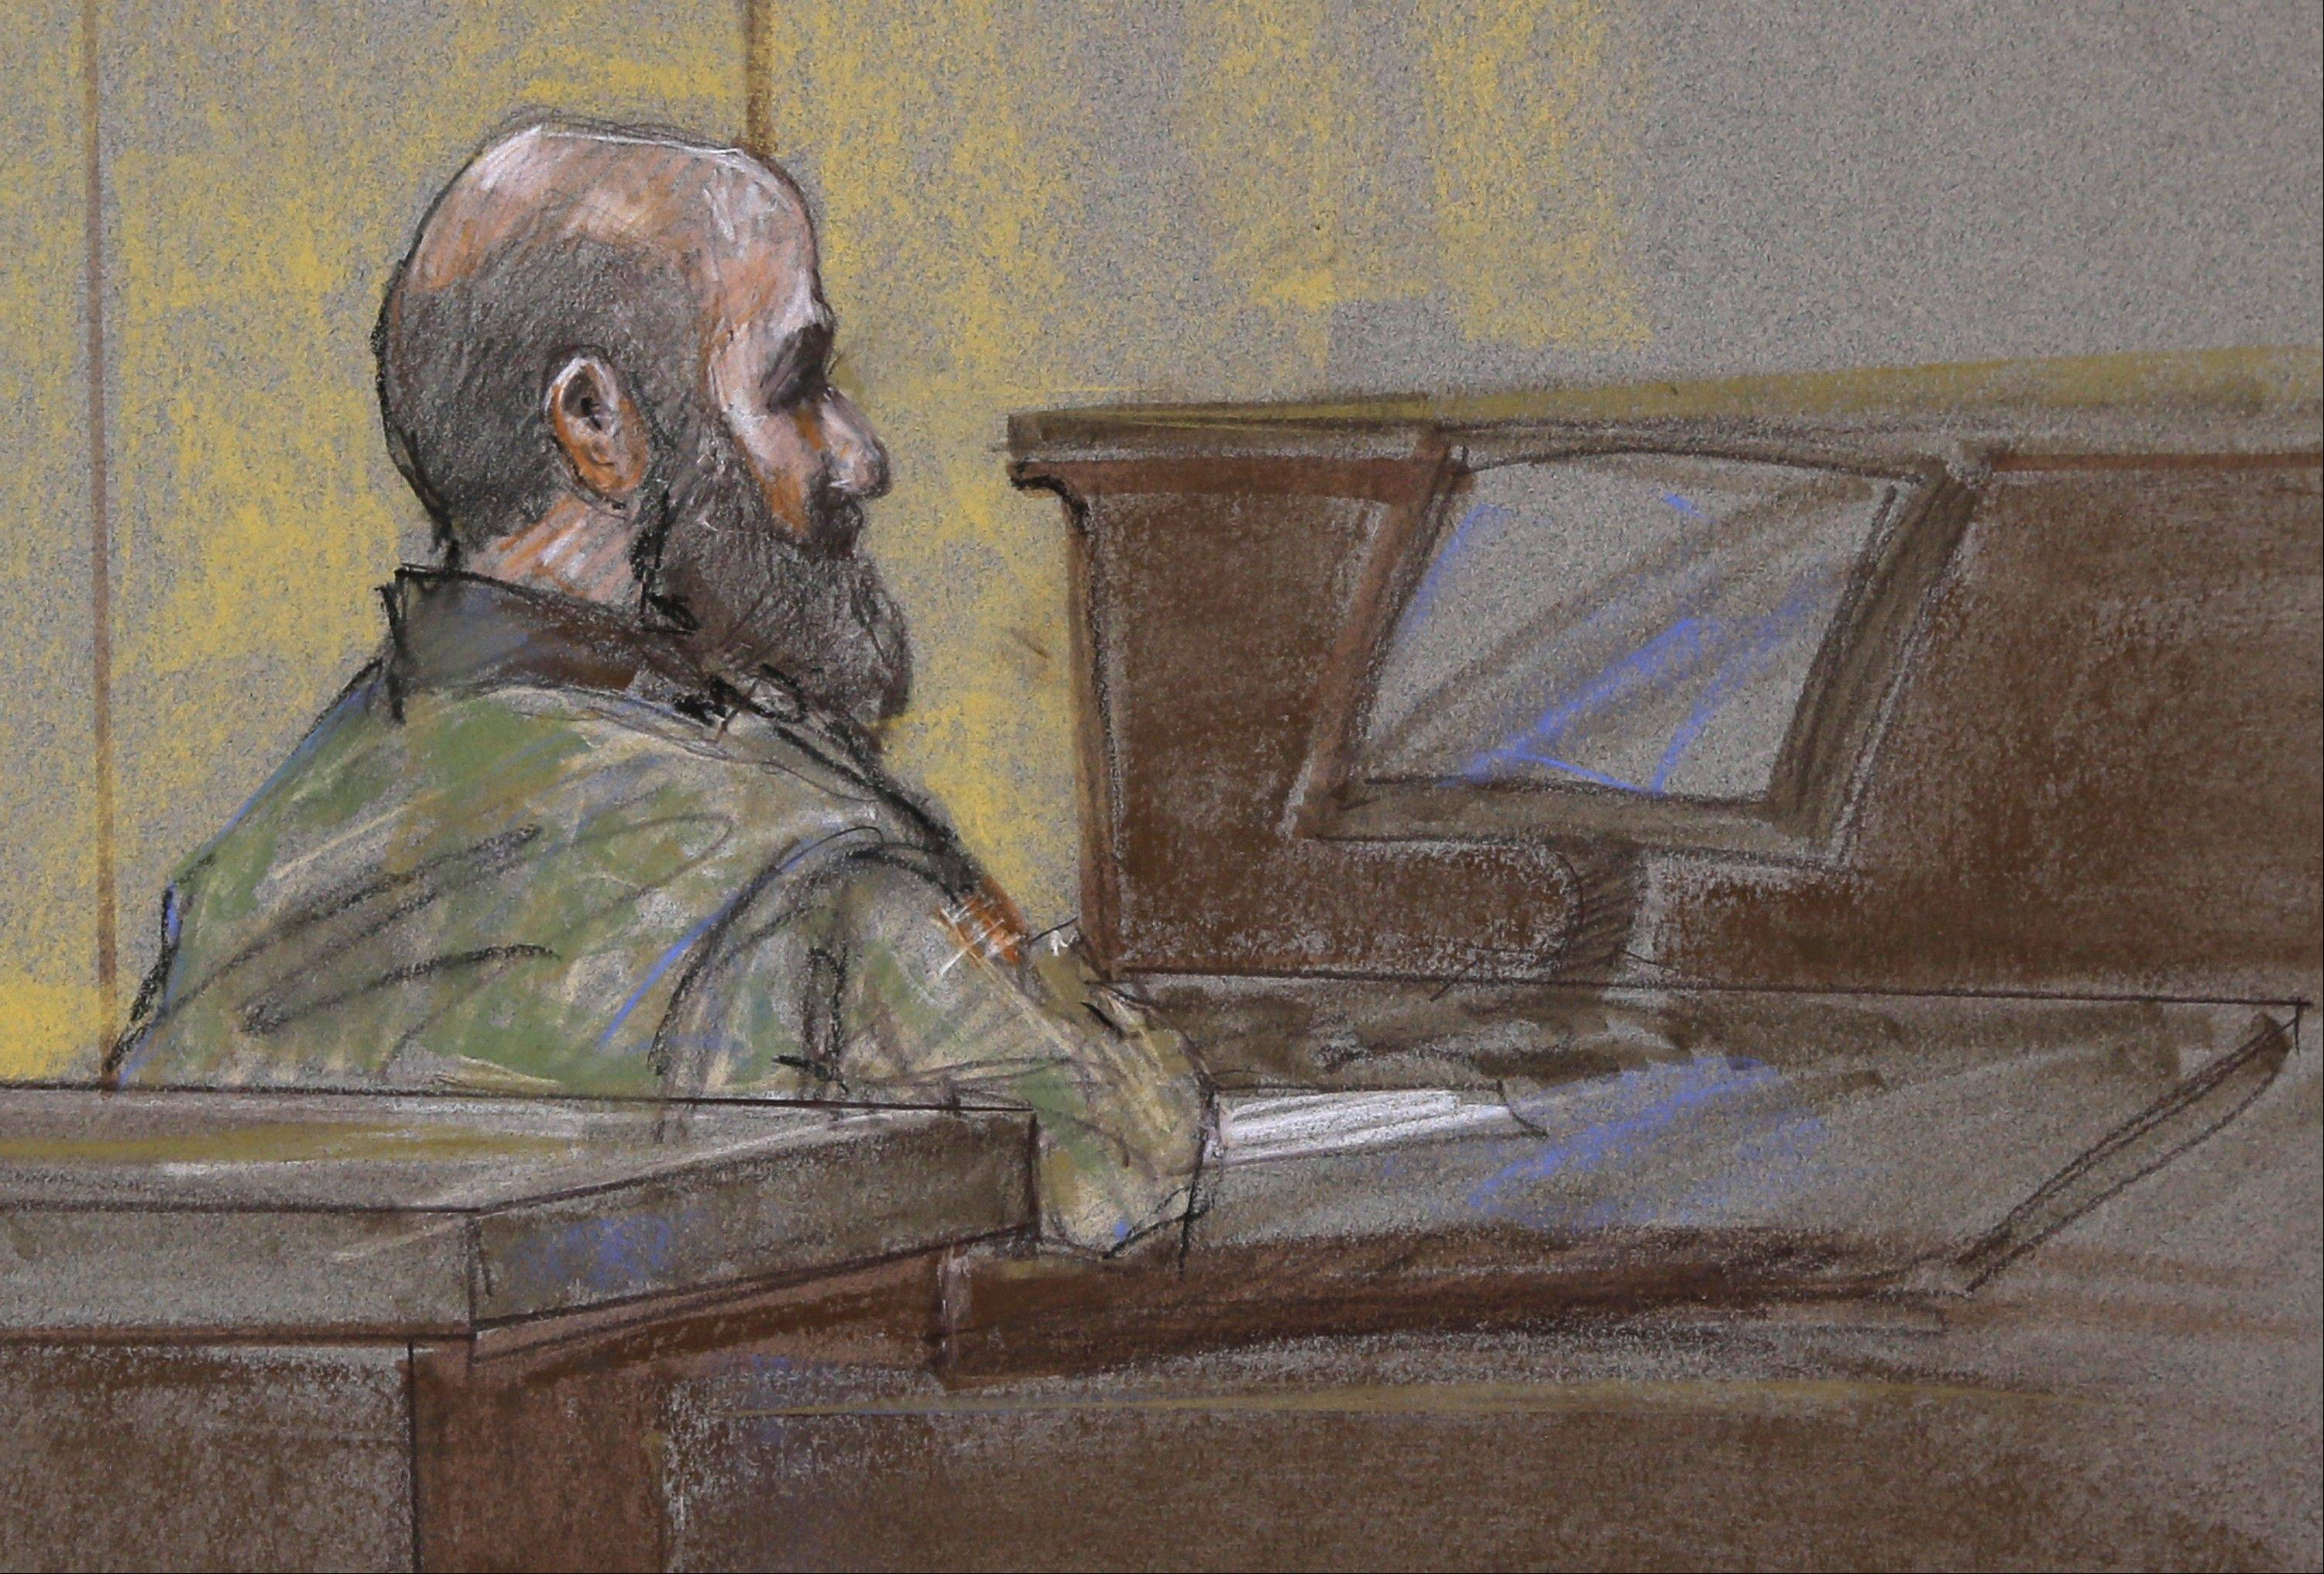 U.S. Army Maj. Nidal Malik Hasan is shown as the guilty verdict is read at his court martial, in Fort Hood, Texas. A military jury has sentenced Hasan to death for the 2009 shooting rampage at Fort Hood that killed 13 people and wounded more than 30 others.